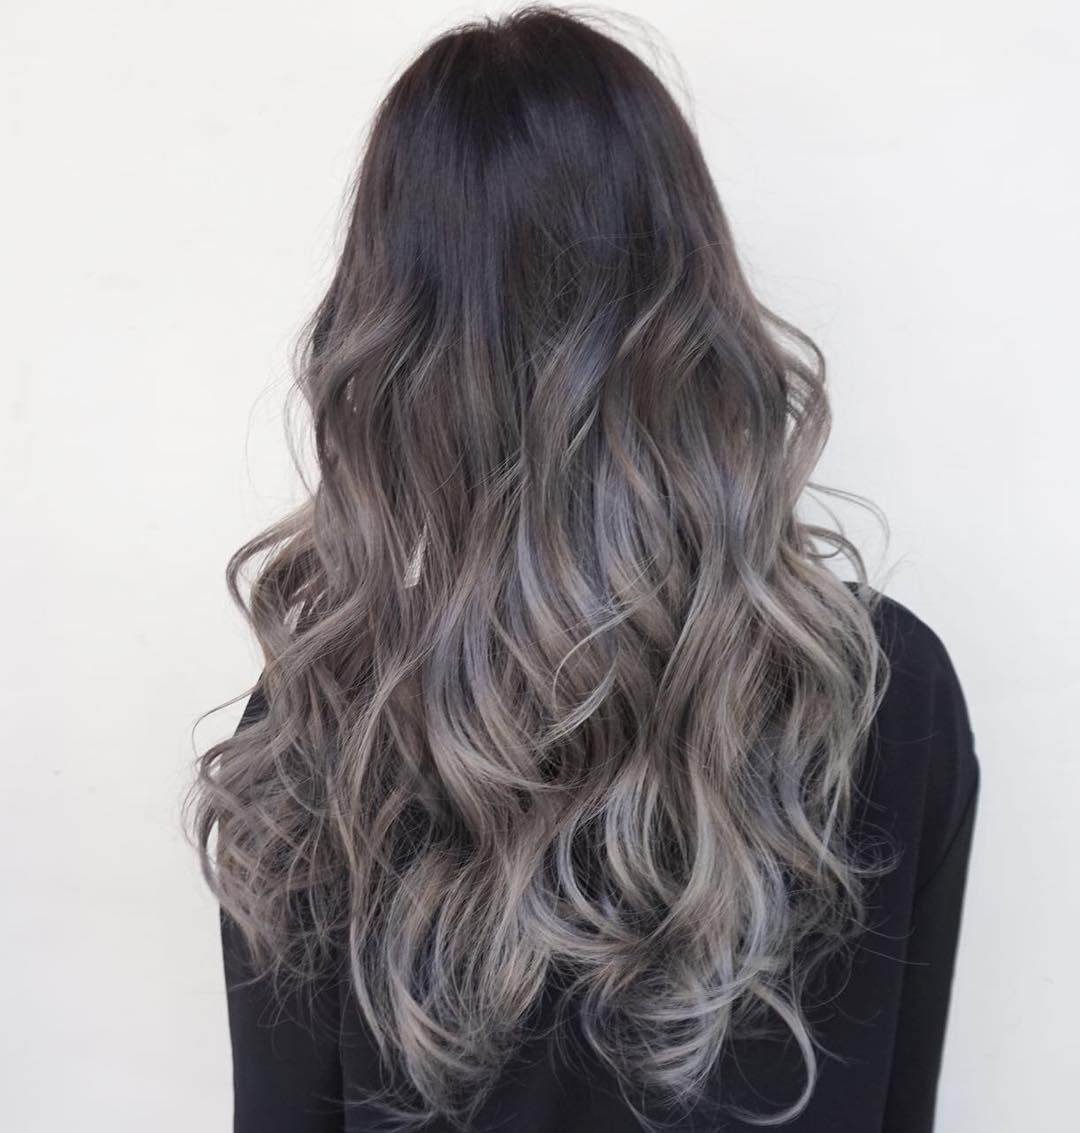 Vancouver Hairstylist On Instagram My Ash Hair Series Will Never